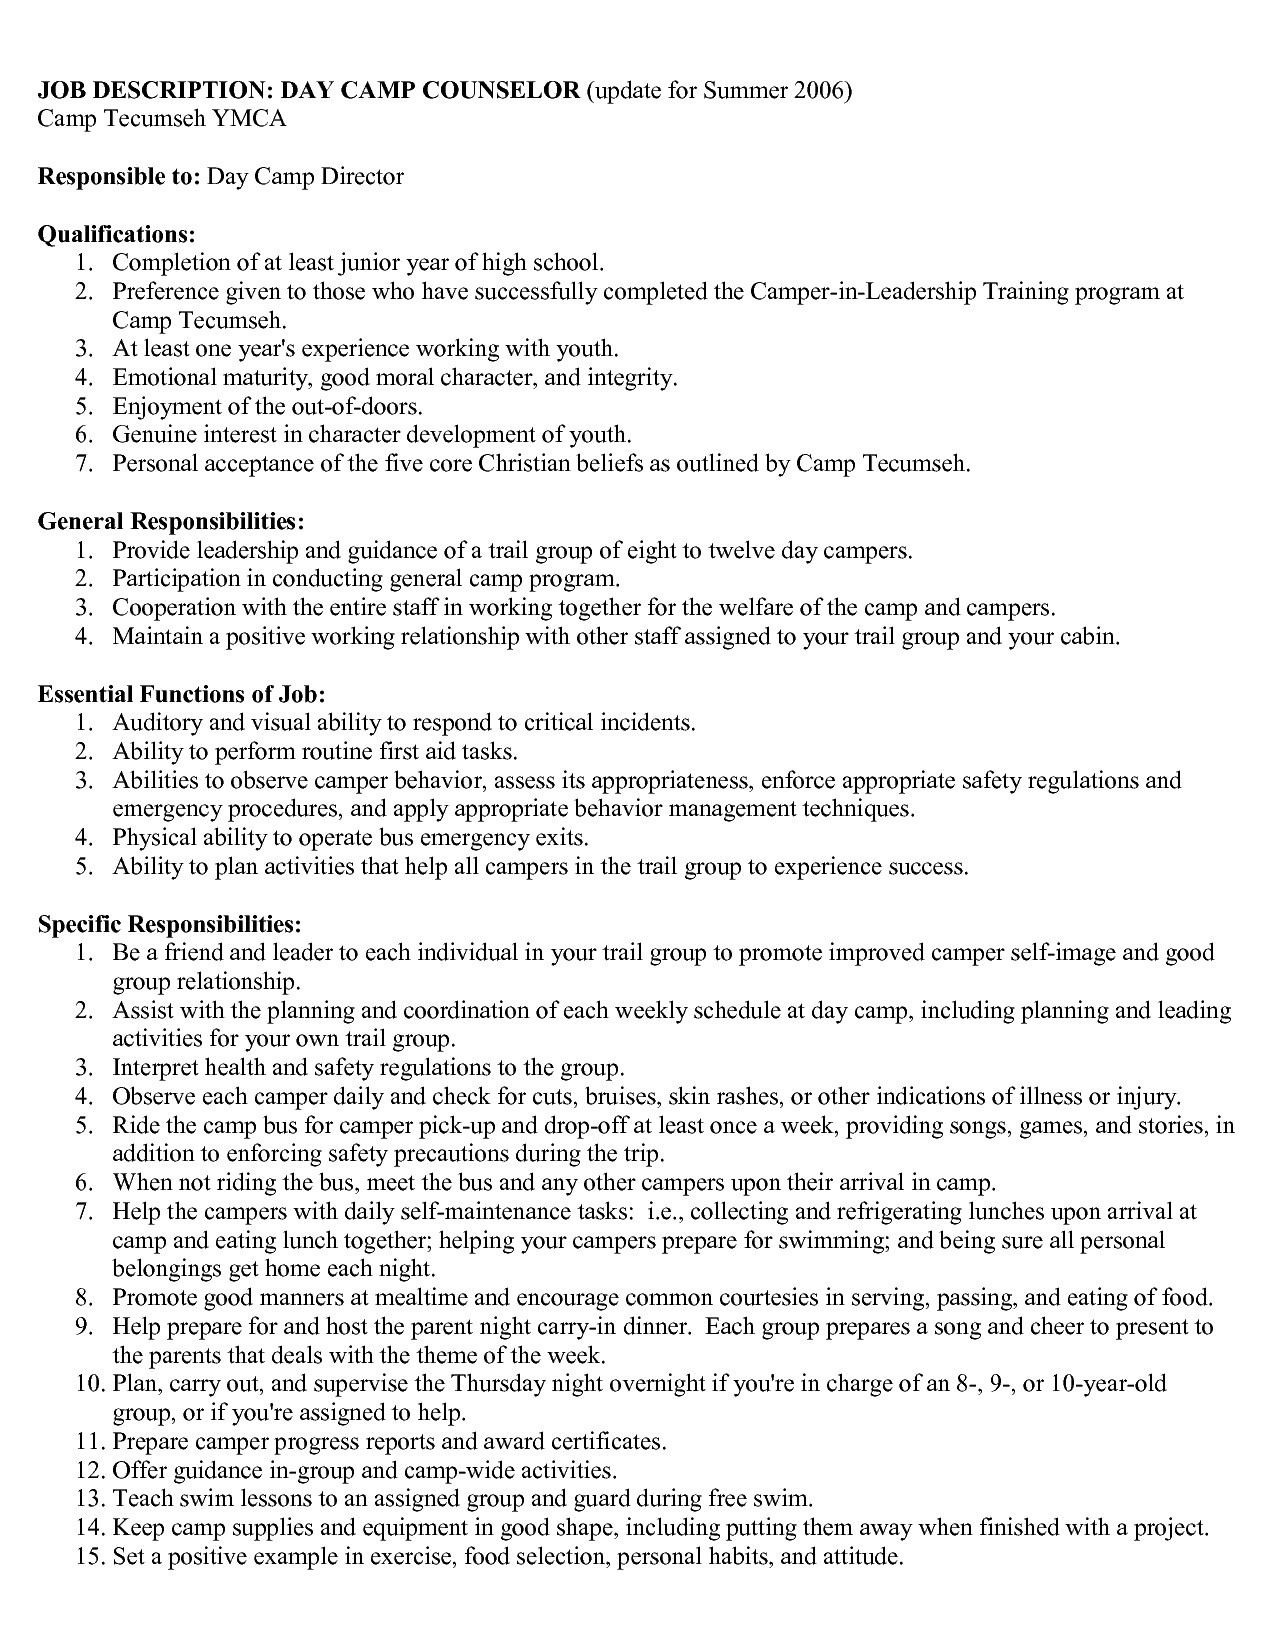 Summer Camp Counselor Responsibilities Resume - 23 Camp Counselor Resume